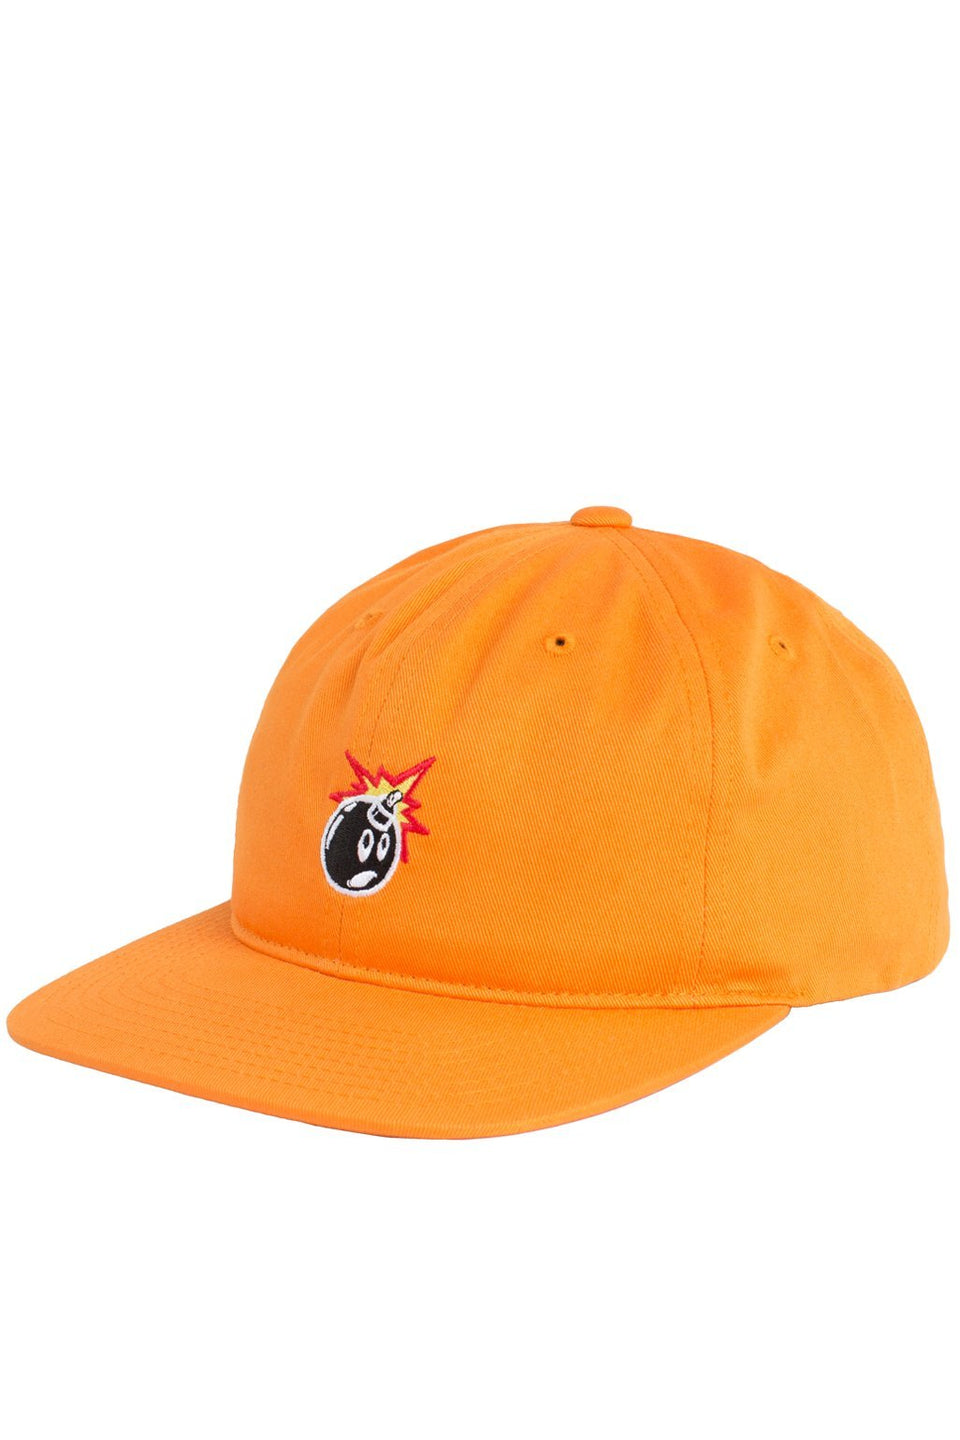 Crate Snapback-HEADWEAR-The Hundreds UK